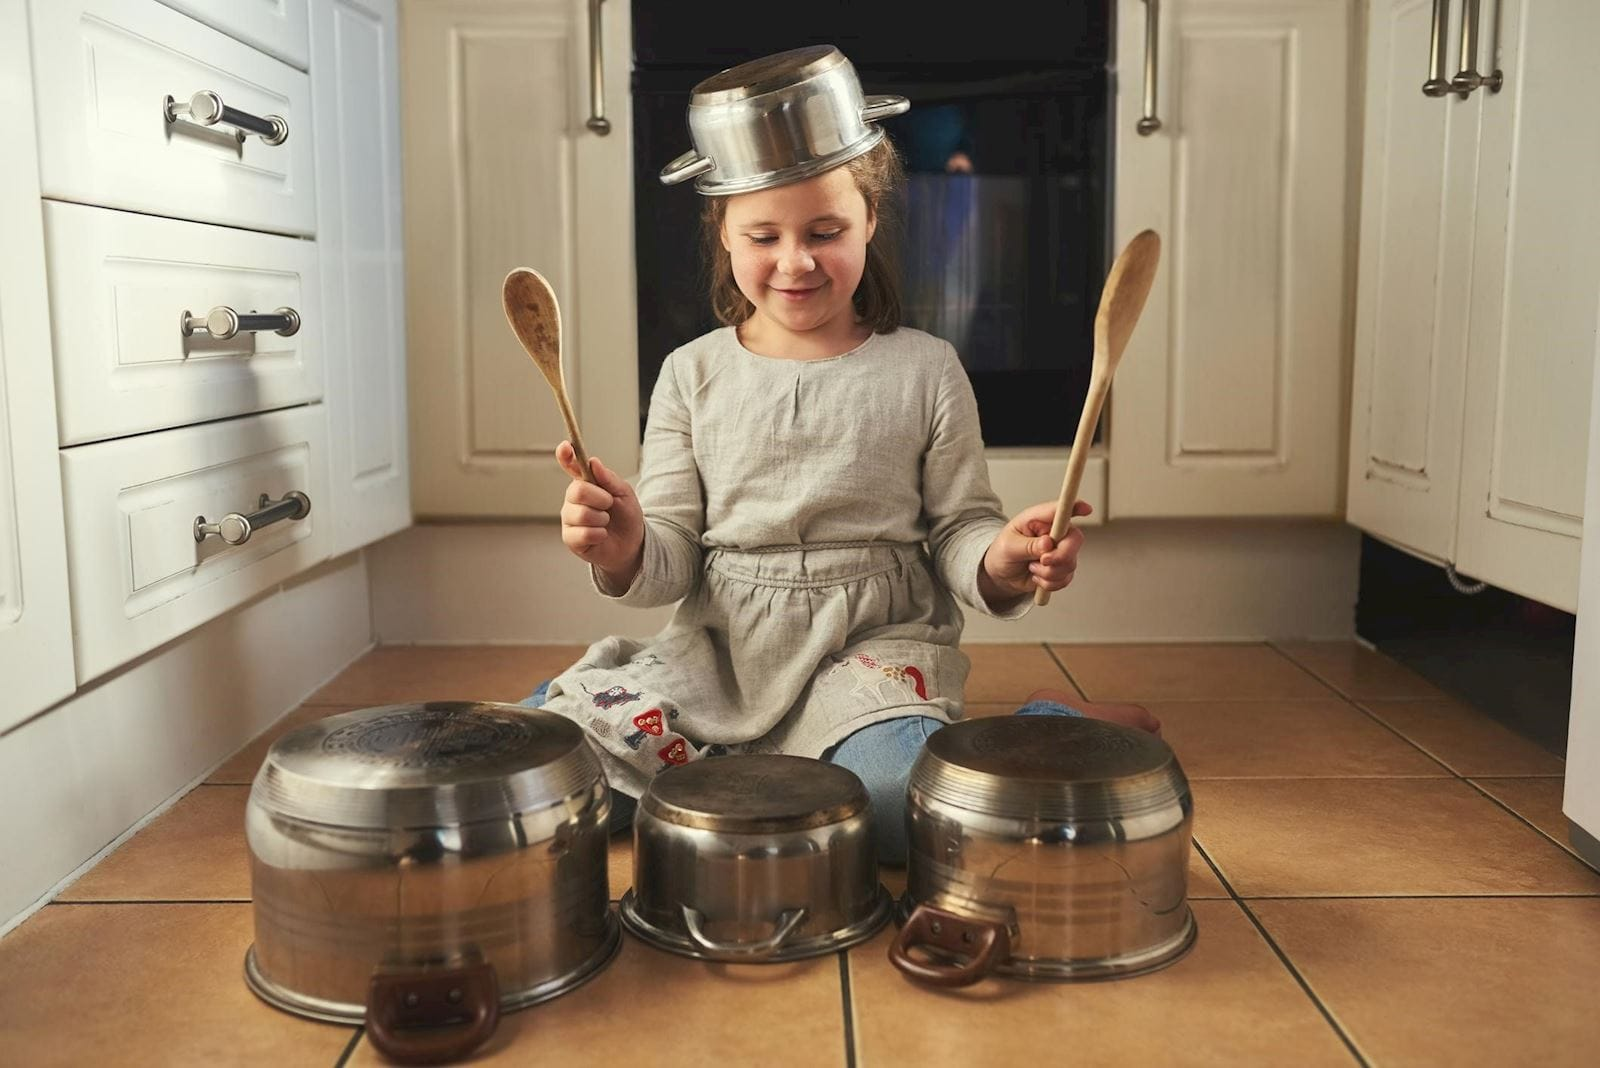 Child with ADHD banging on pots and pans with wooden spoons